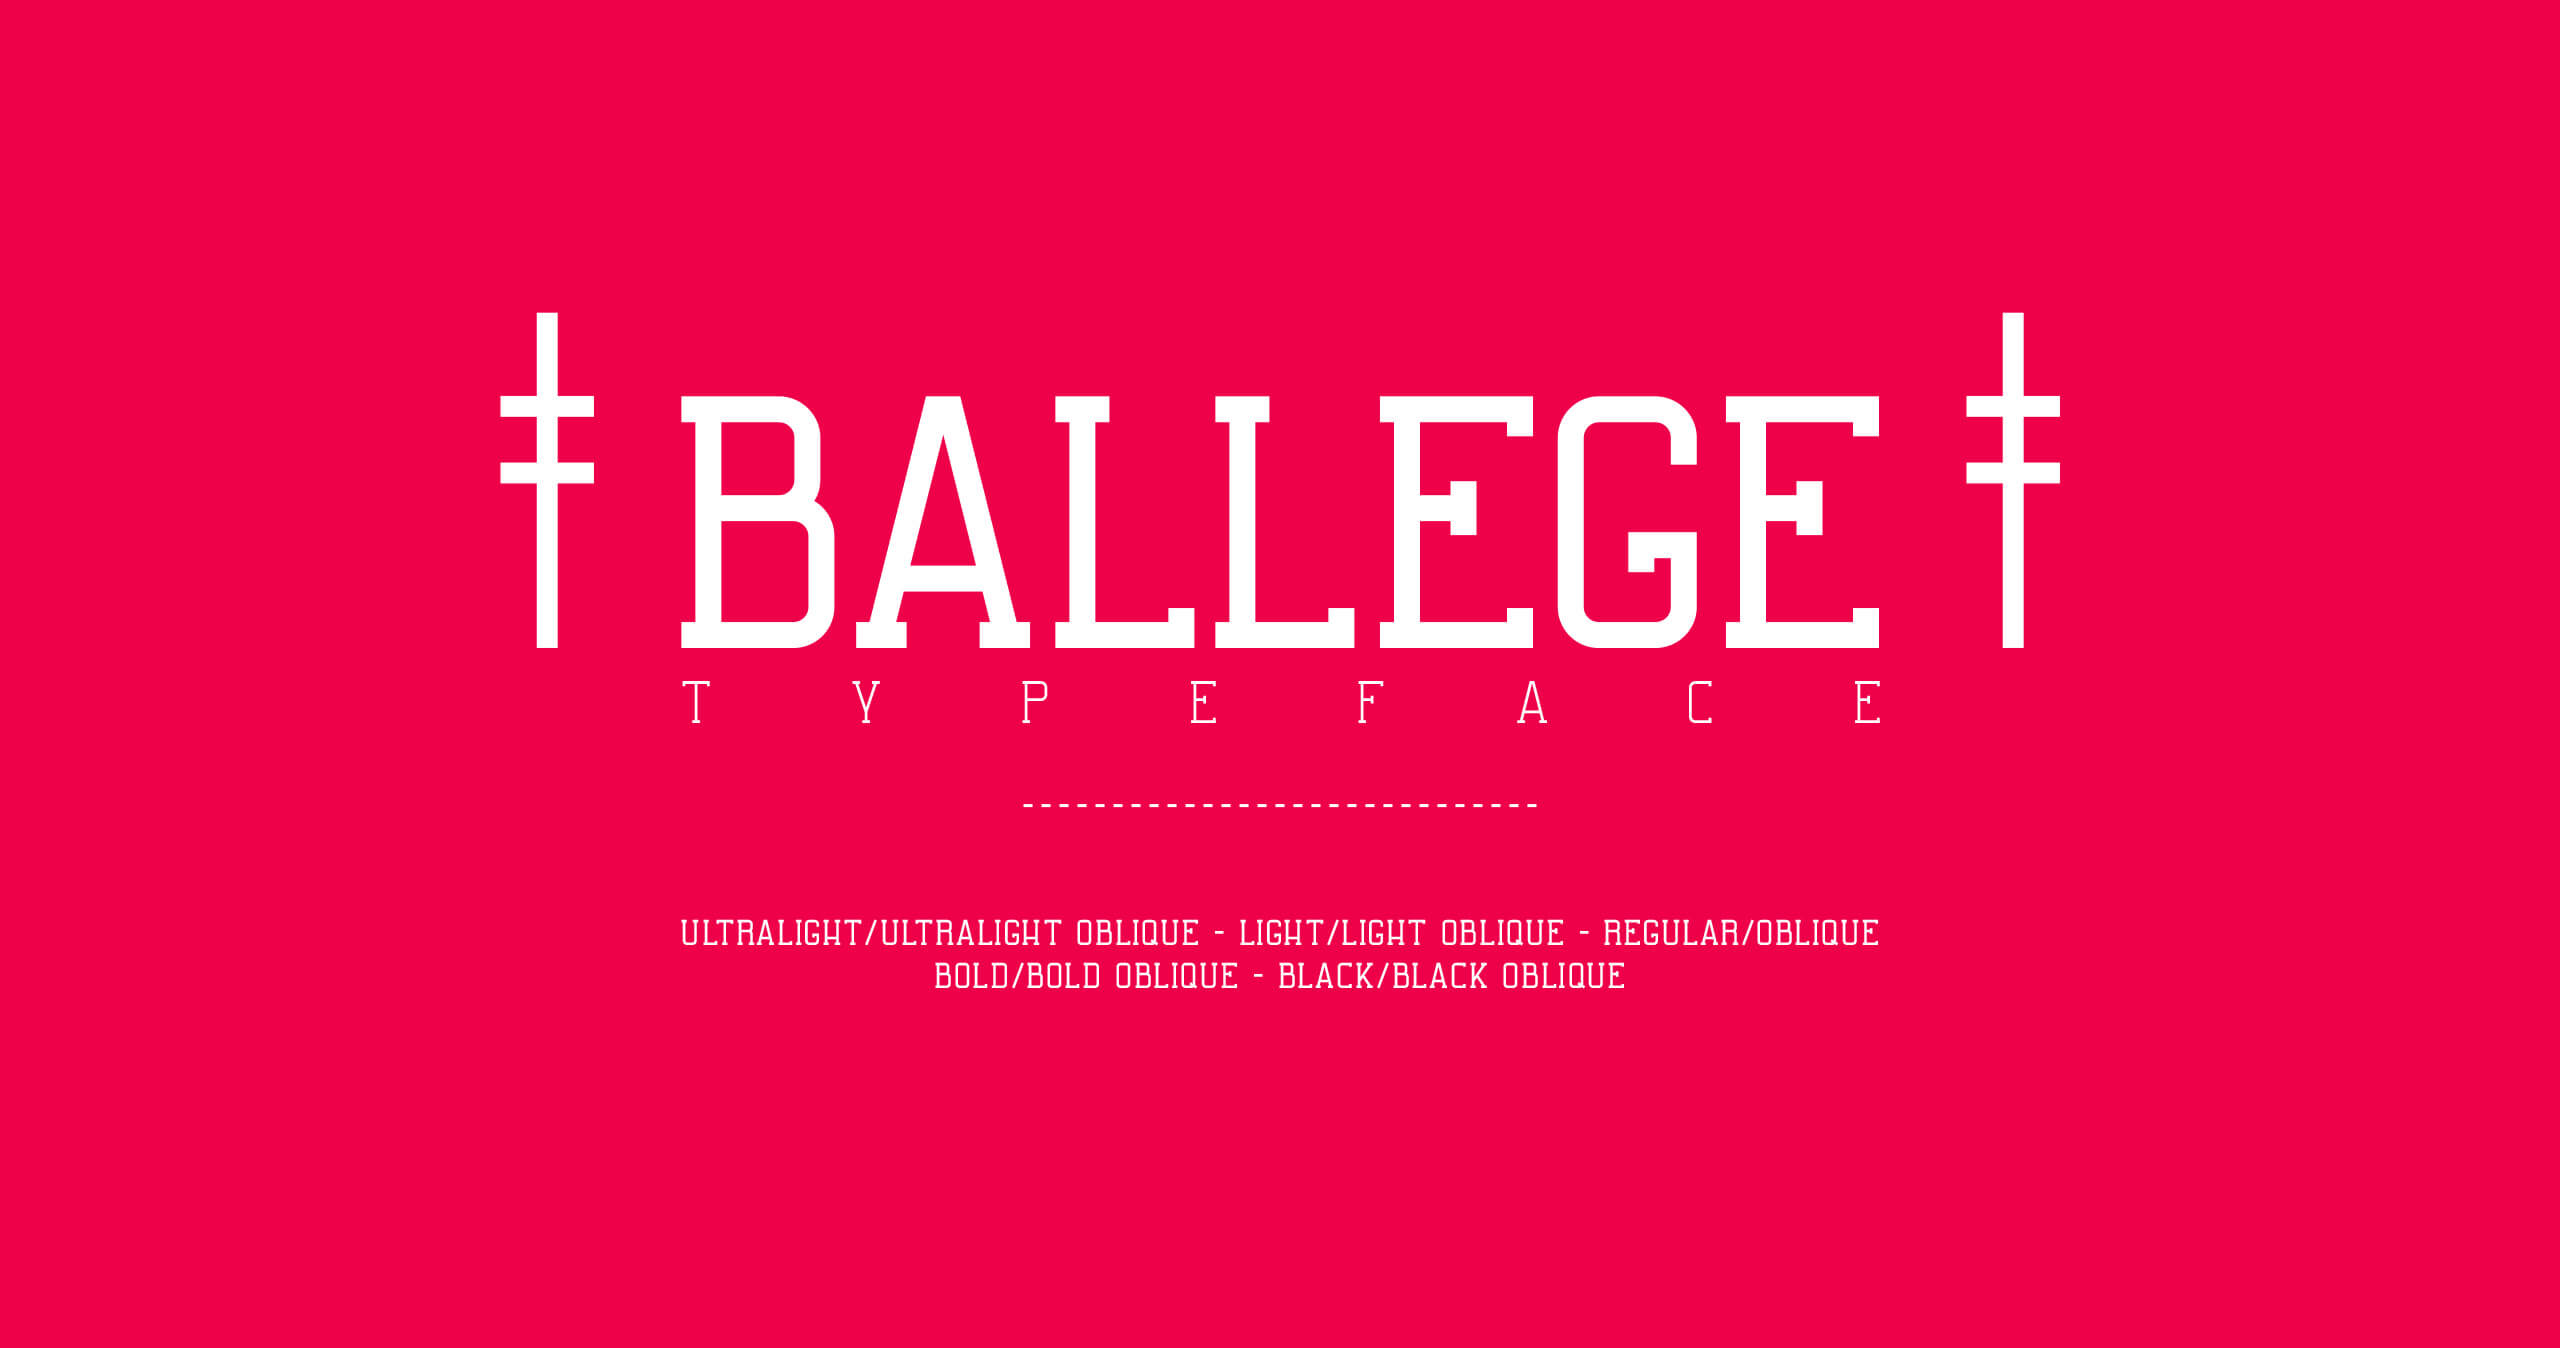 Ballege Typeface Free Font